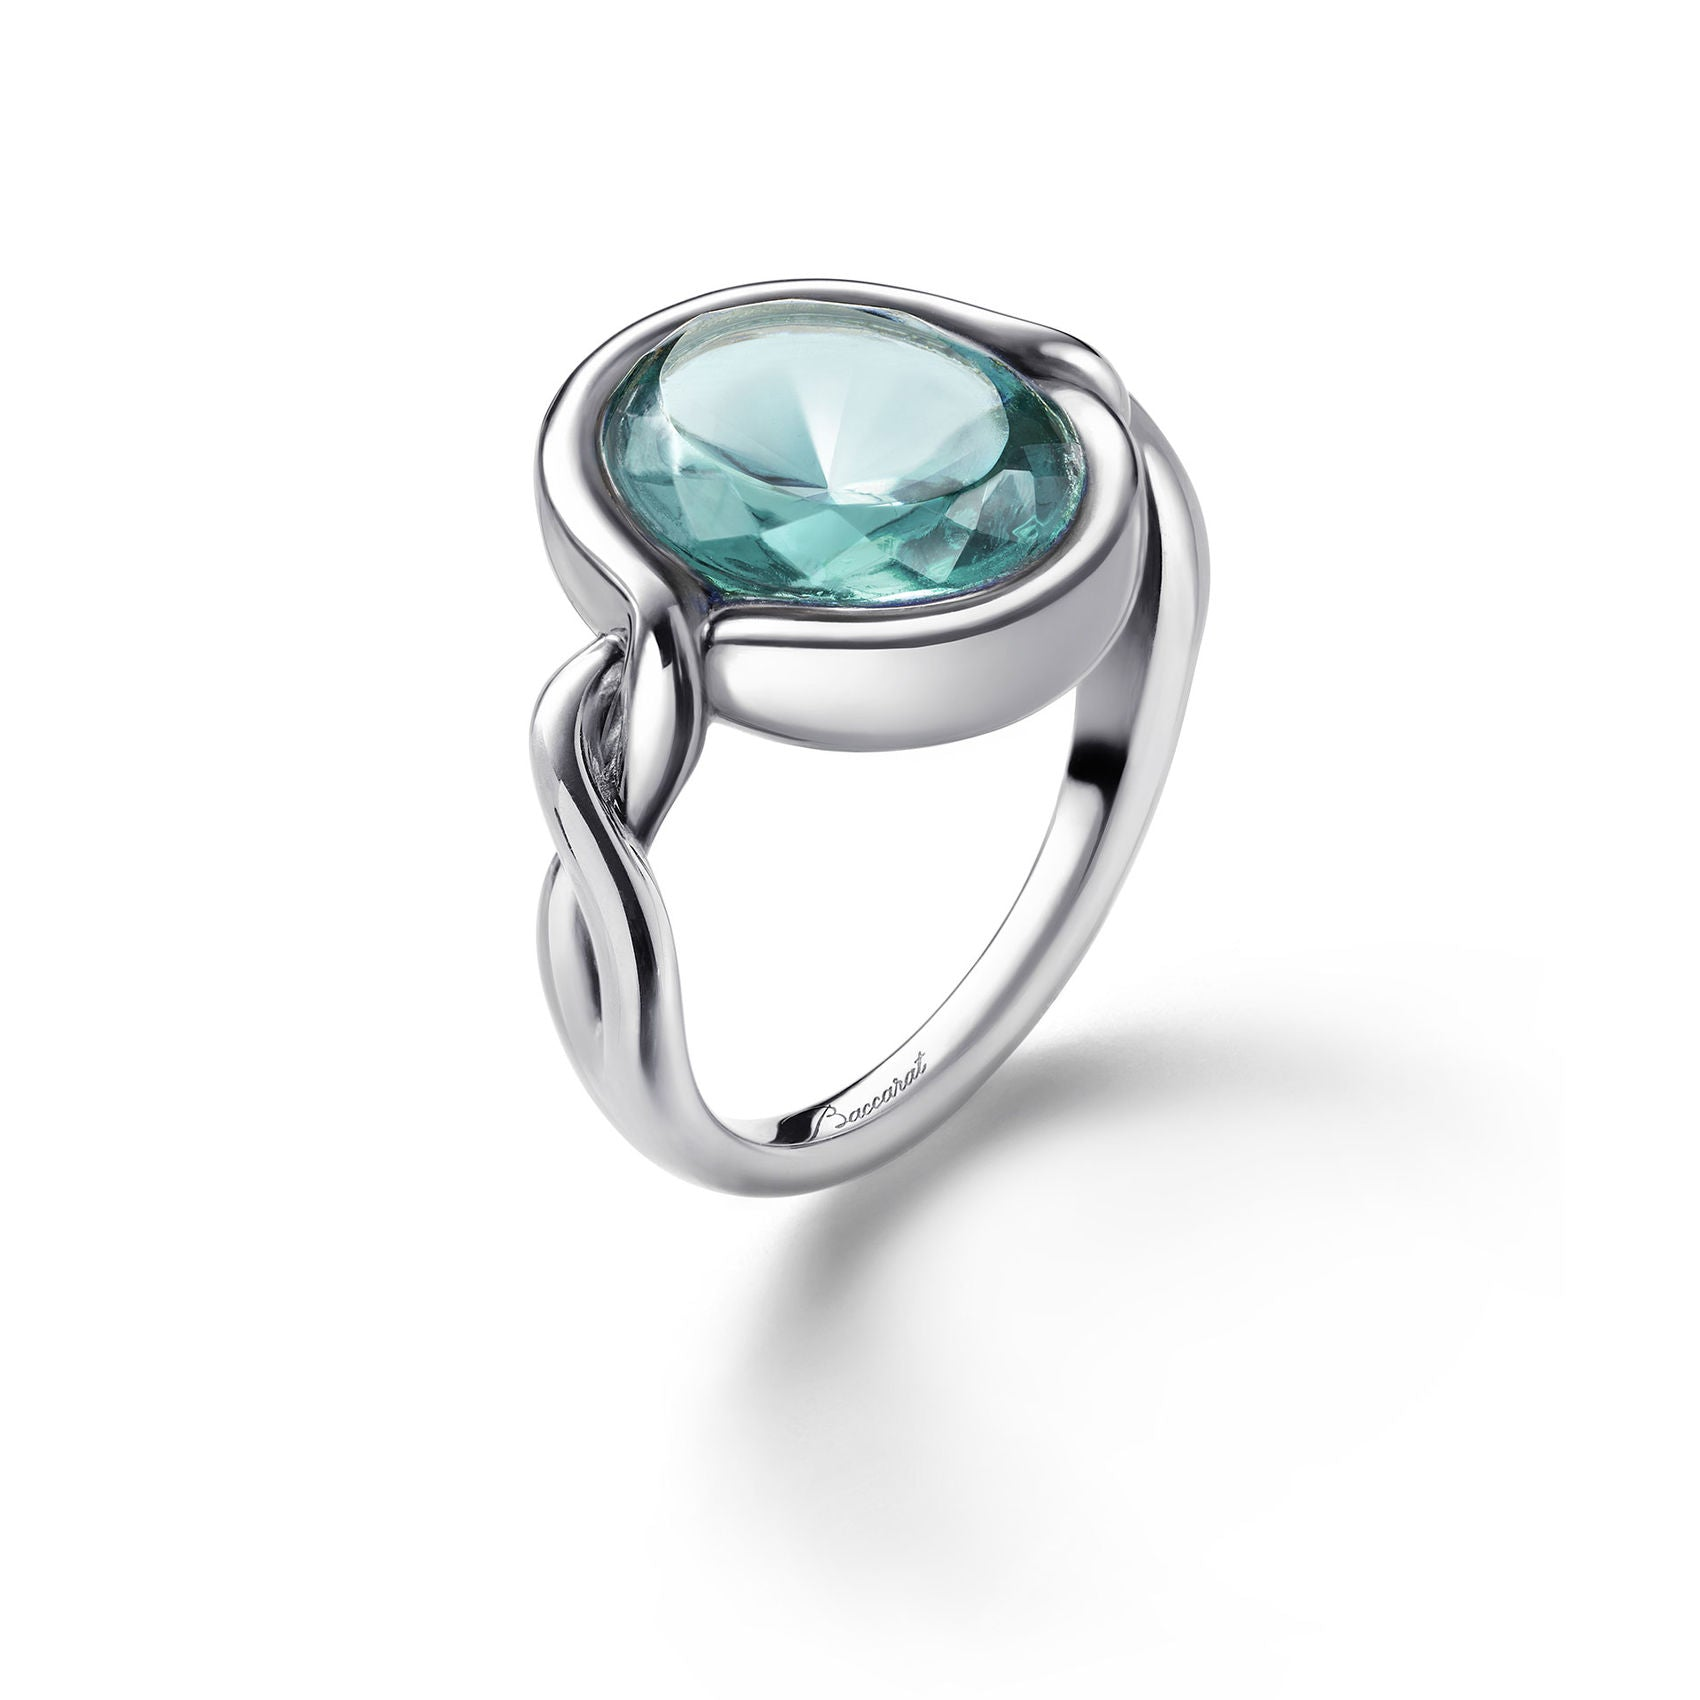 Silver Croise Turquoise Crystal Ring